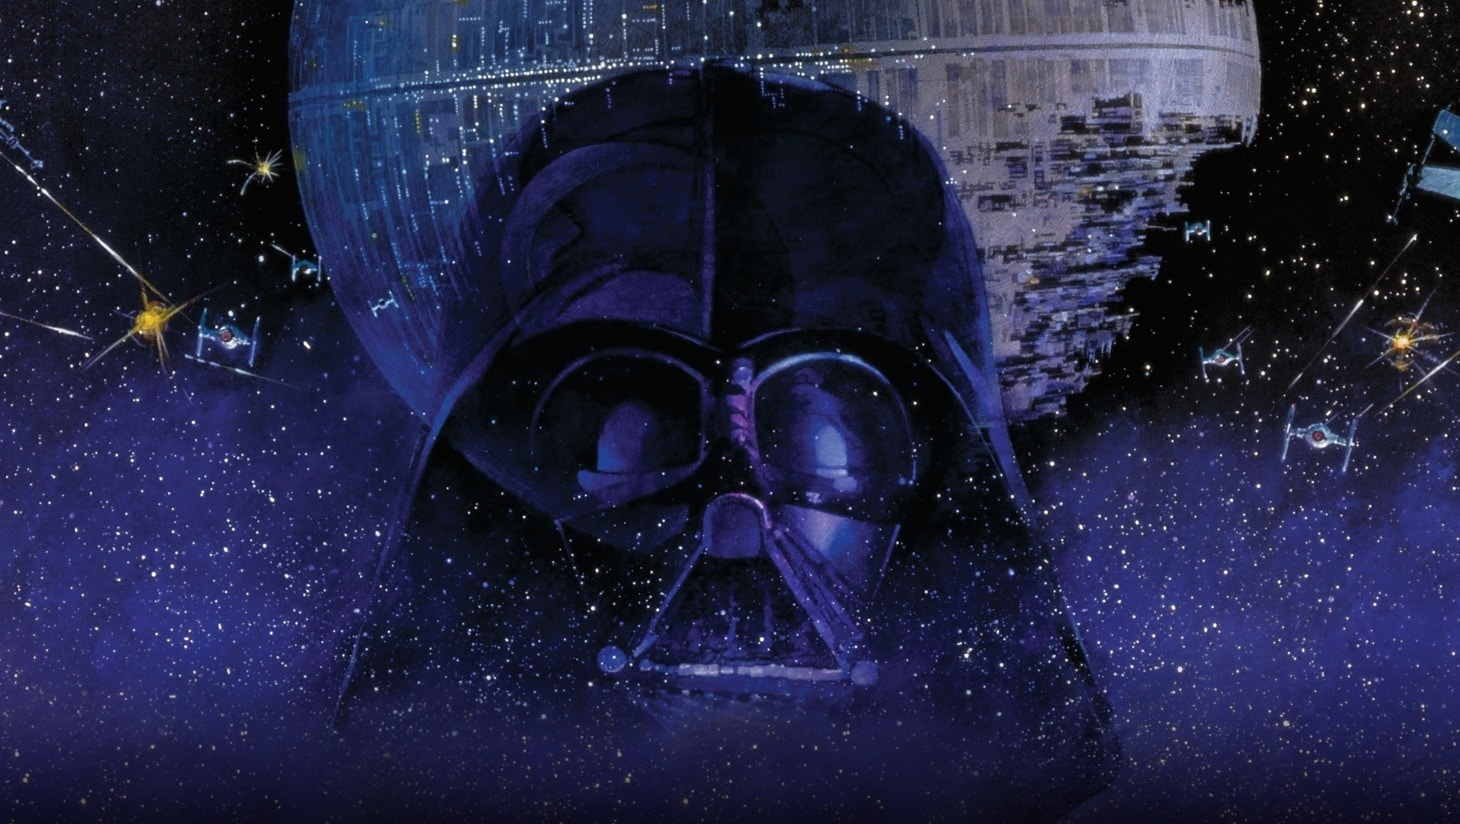 Darth Vader seen faded amongst the starry sky